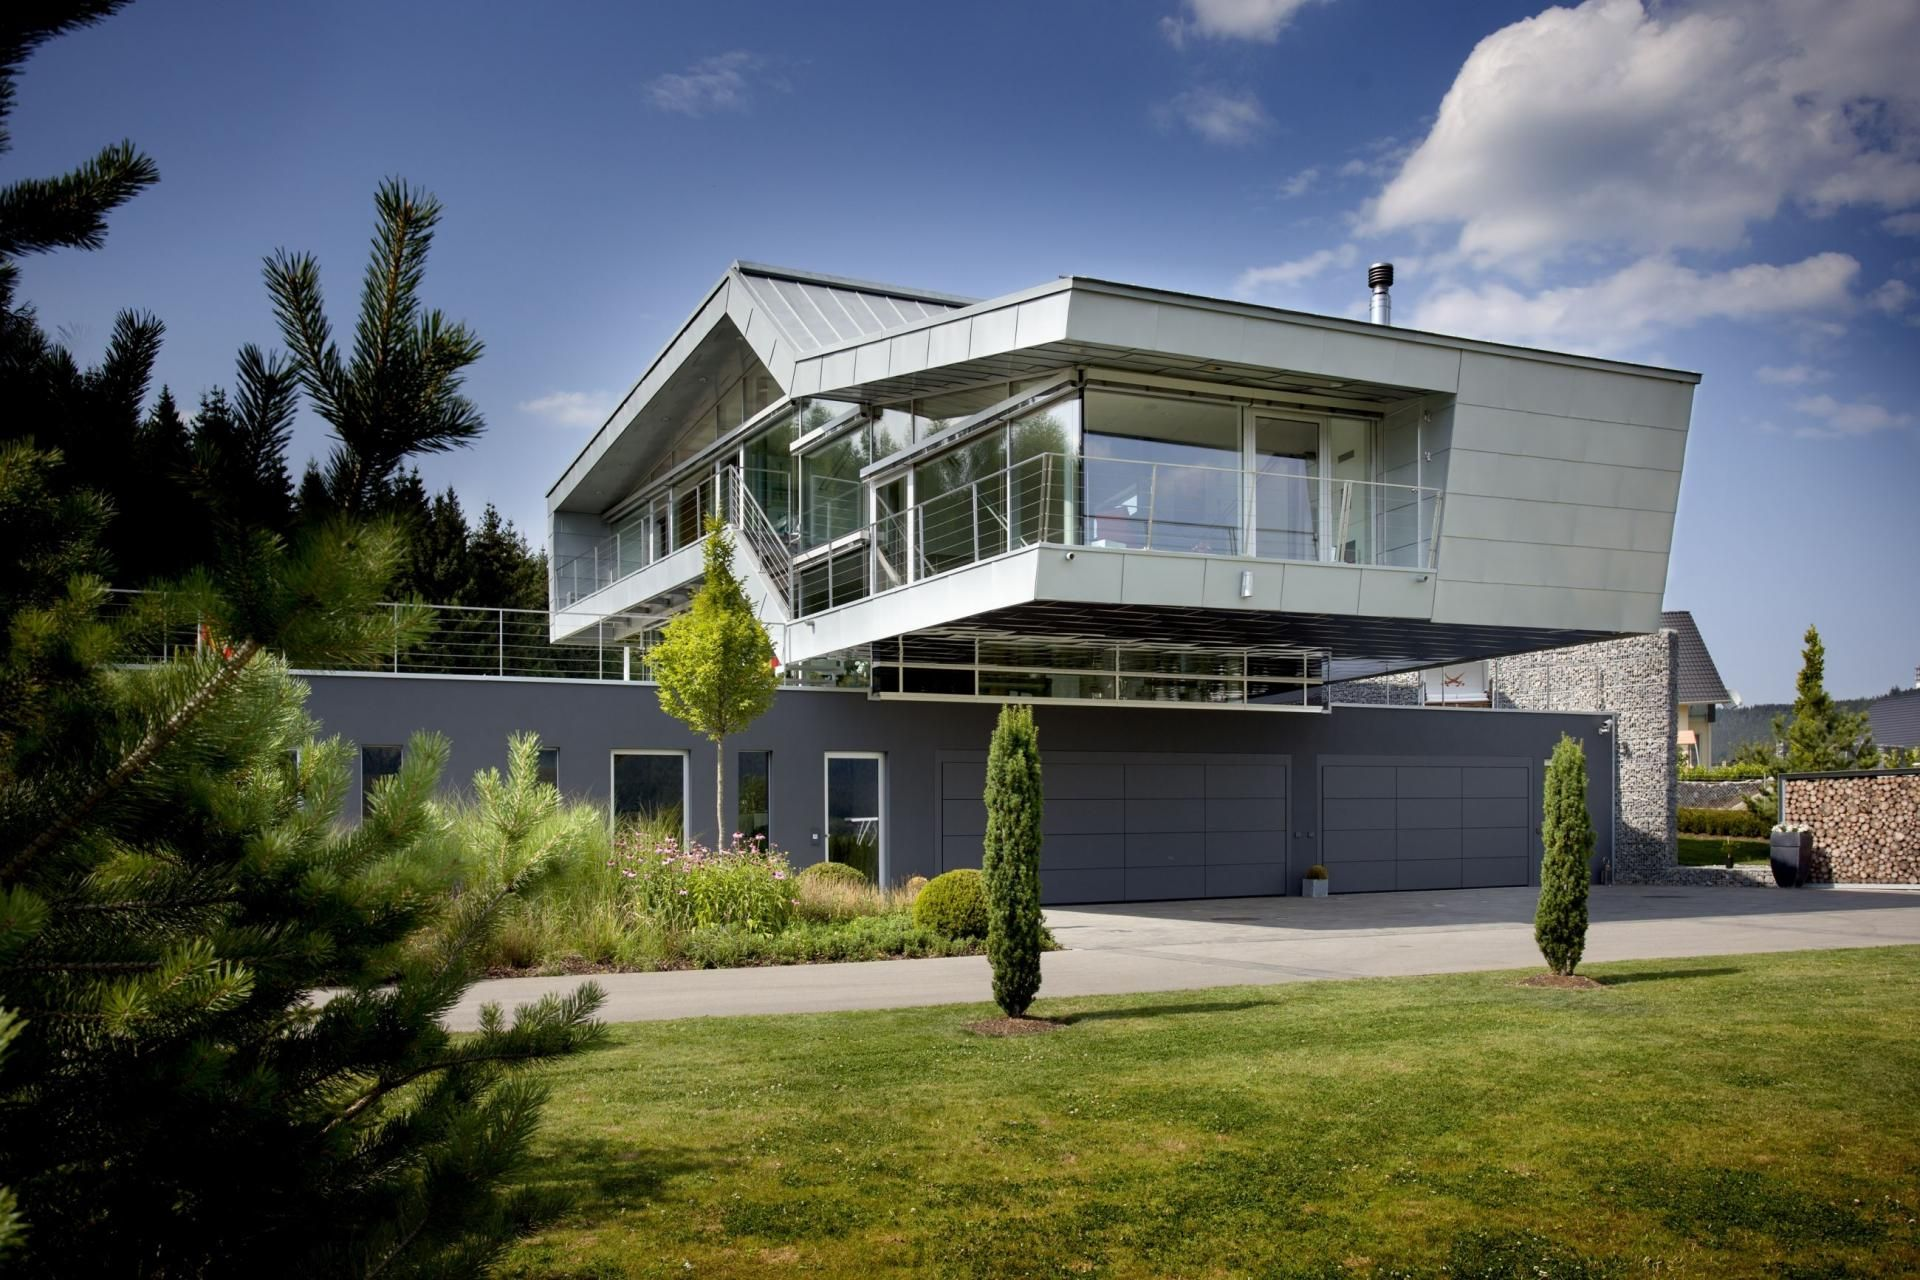 An Engineer's Incredible HighTech Dream Home Futuristic